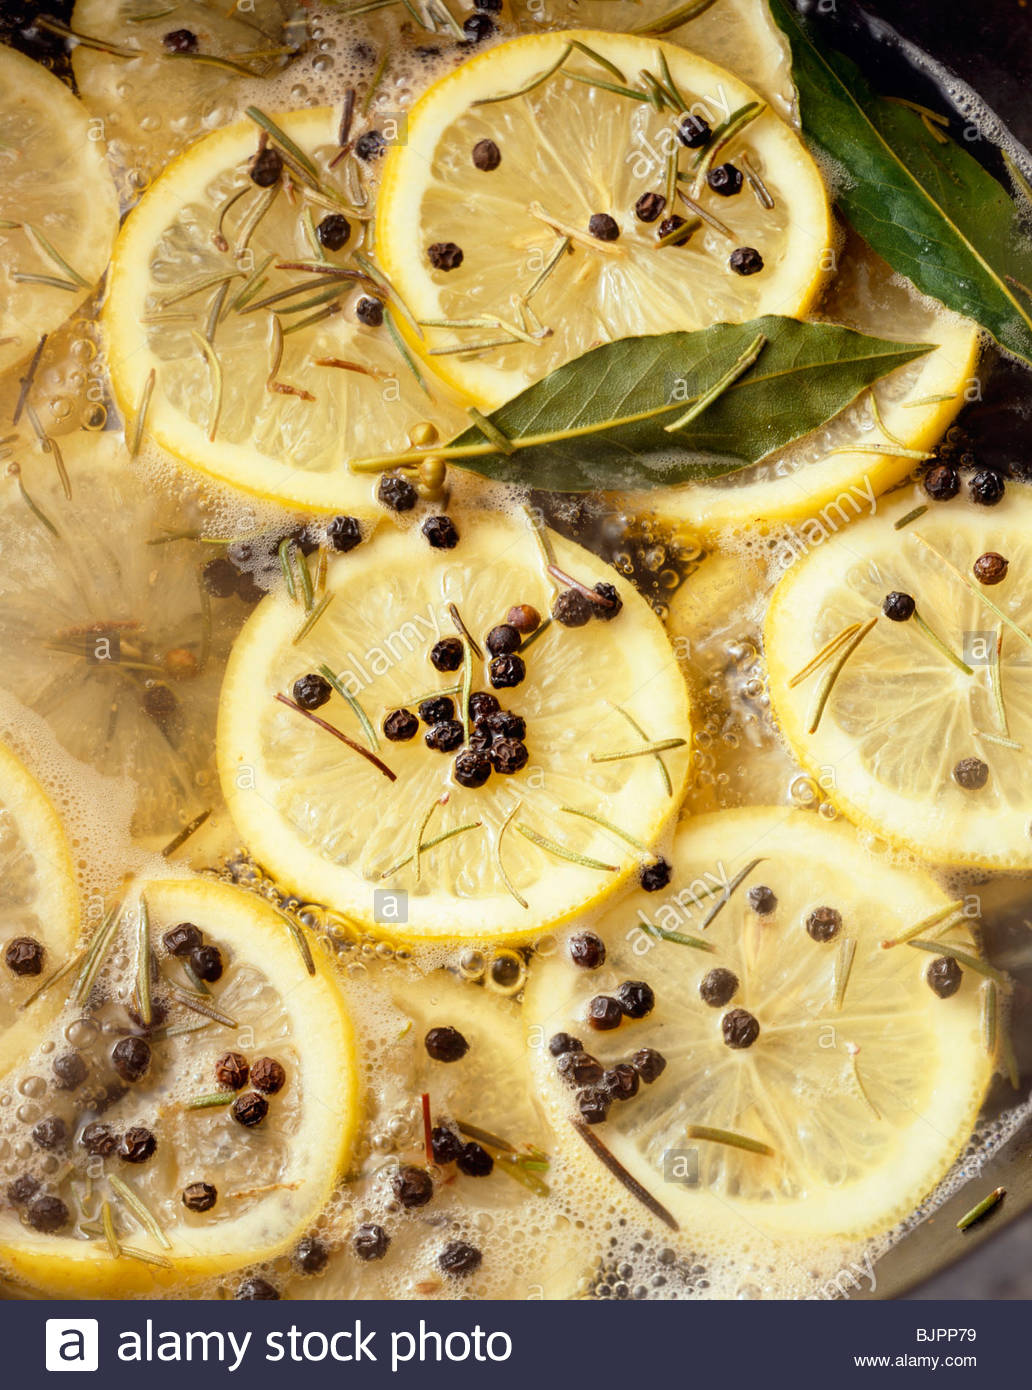 Lemon Pepper Bay Leaf and Rosemary Boil - Stock Image